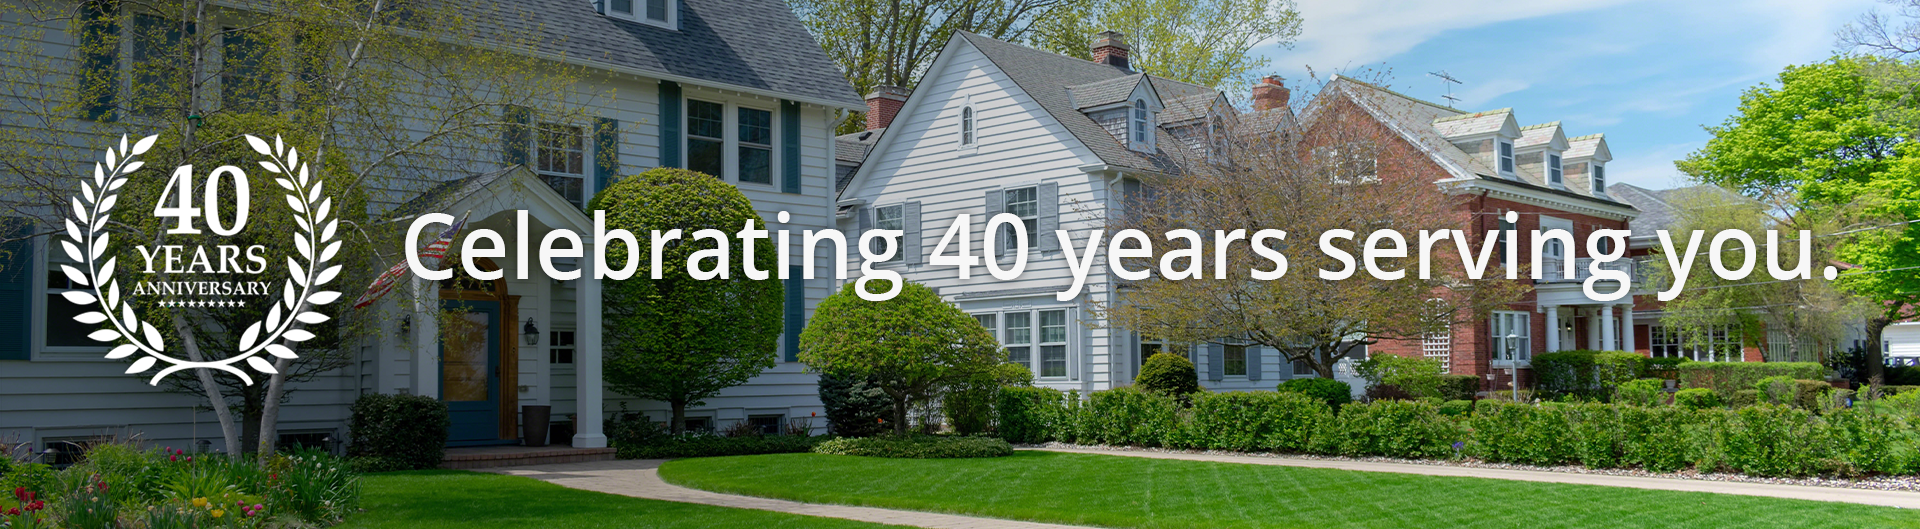 celebrating 40 years of serving you